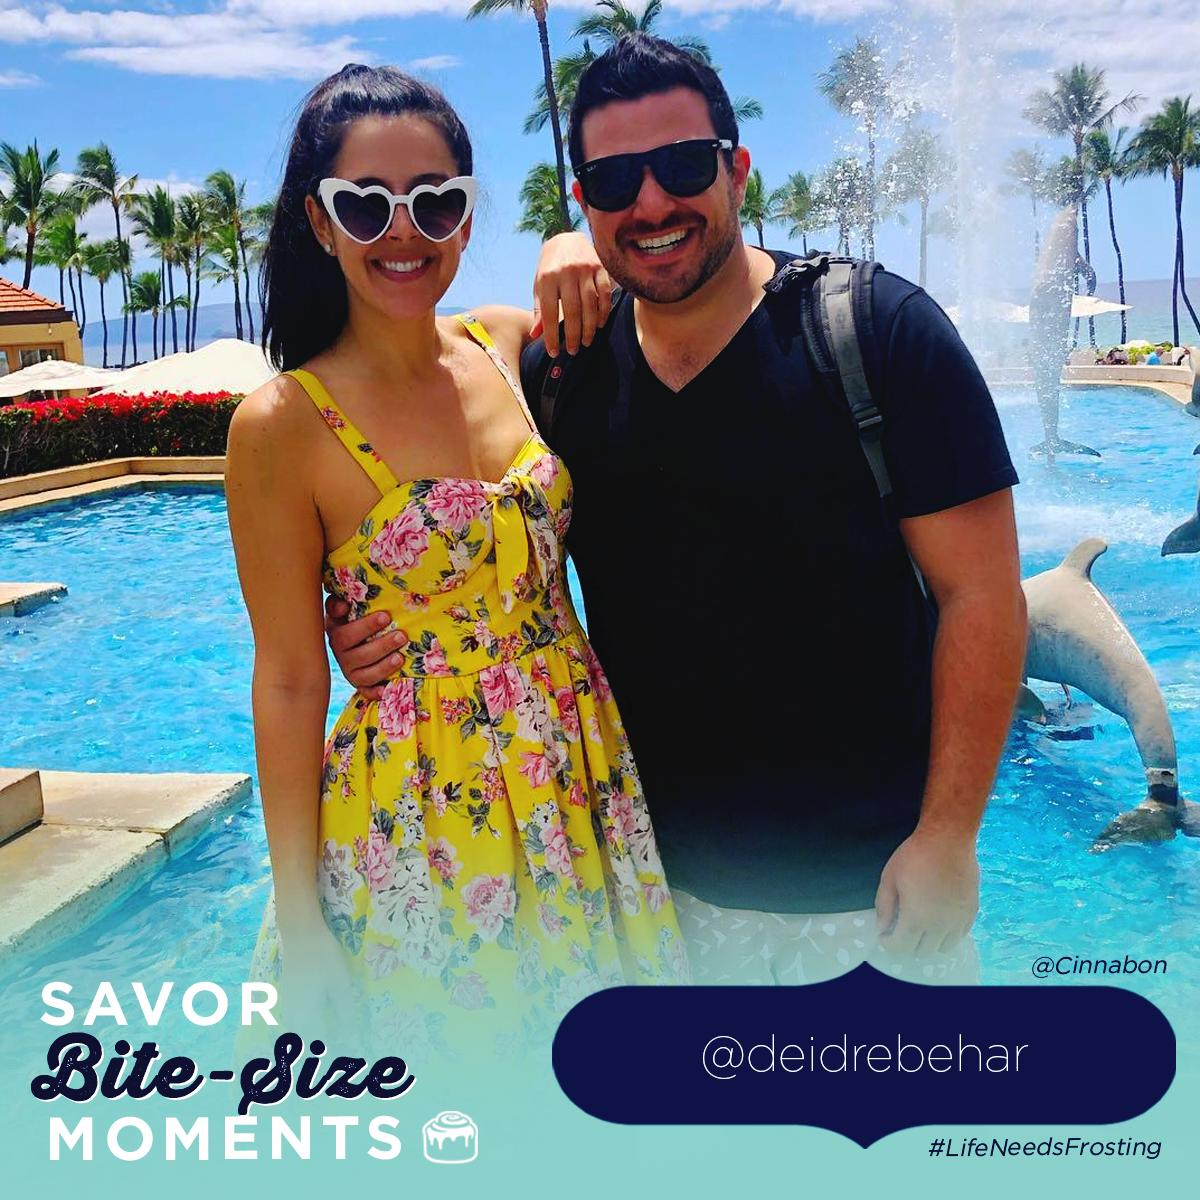 We say aloha to this moment in Maui captured by @deidrebehar. You can *almost* hear the wedding bells. #LifeNeedsFrosting<br>http://pic.twitter.com/vqQjBH28Tu